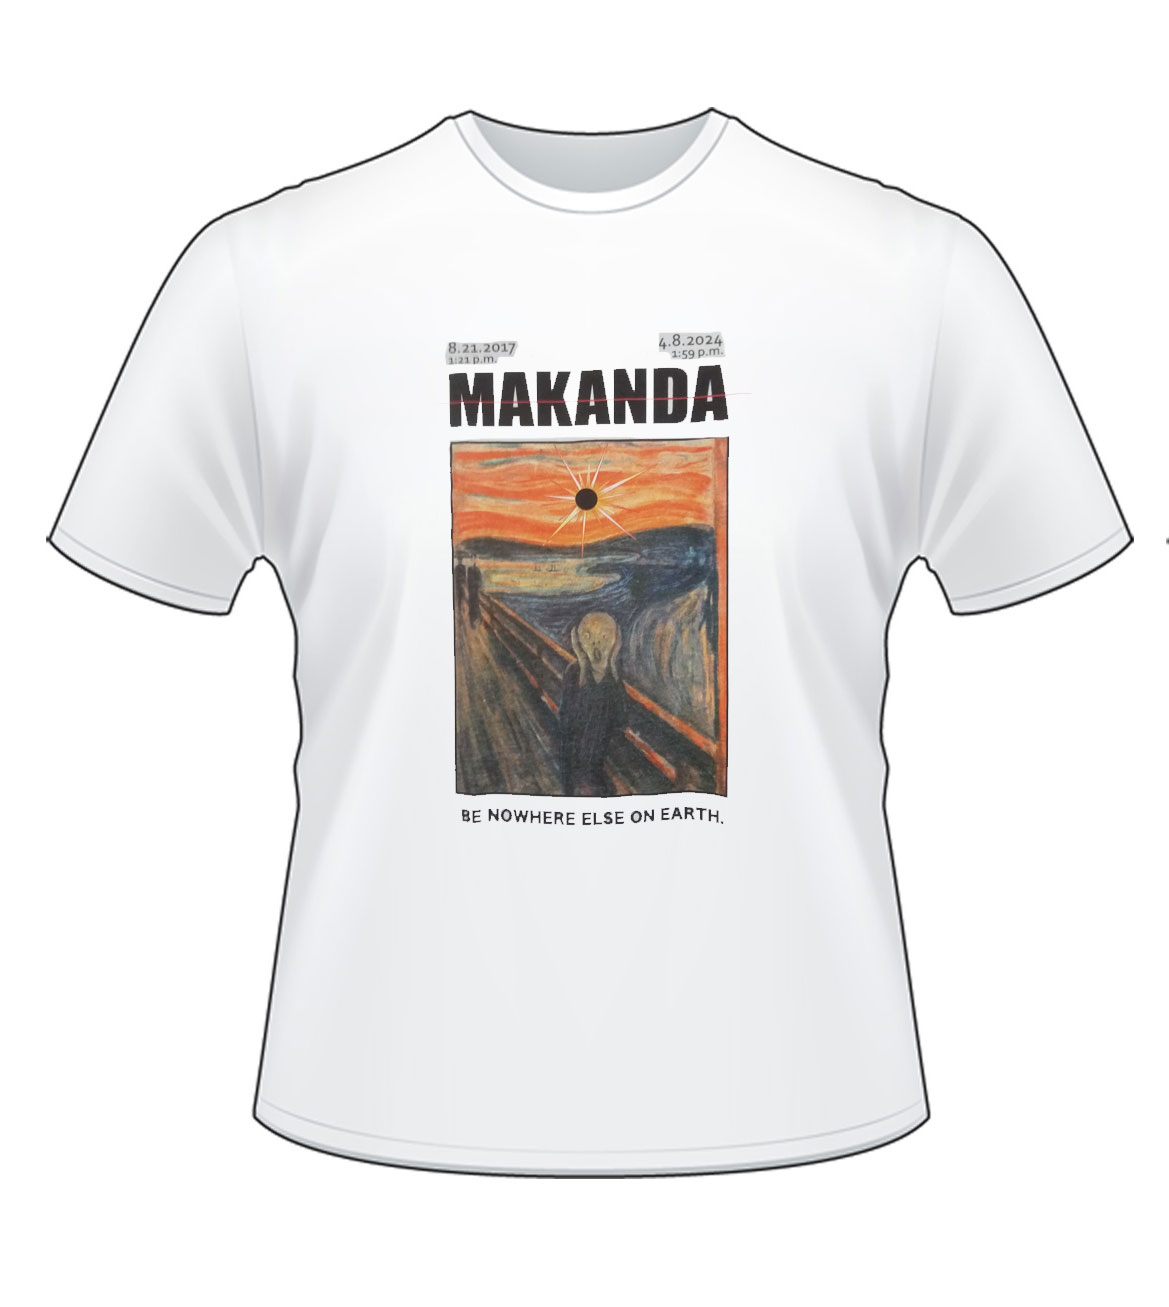 "Image for the 710 BRANDED MAKANDA ""SCREAM"" TOTAL ECLIPSE WHITE SHORT SLEEVE T-SHIRT product"